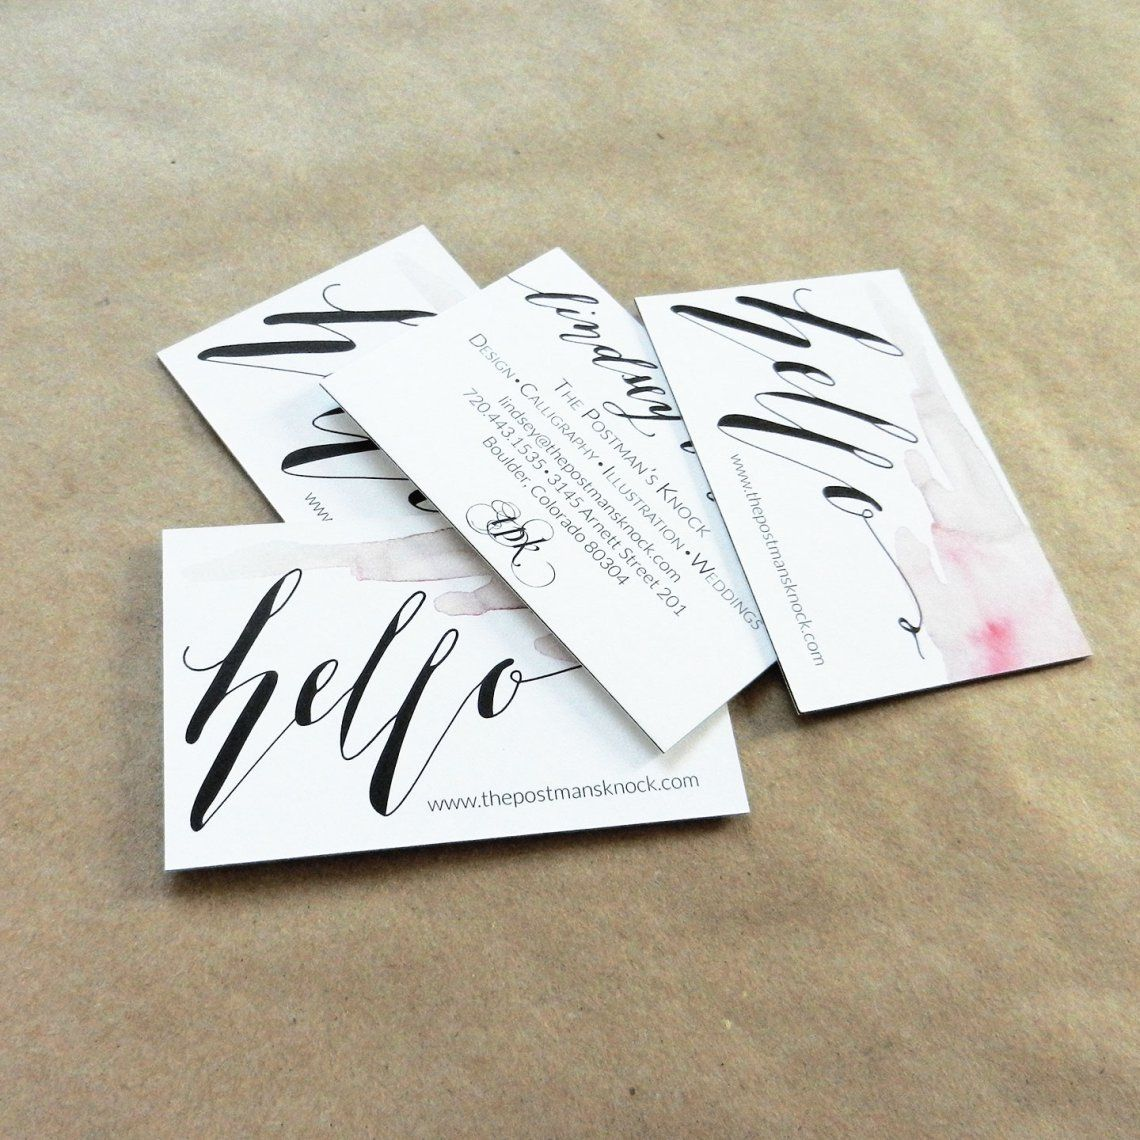 A Peek Inside the Studio | Business cards and Studio